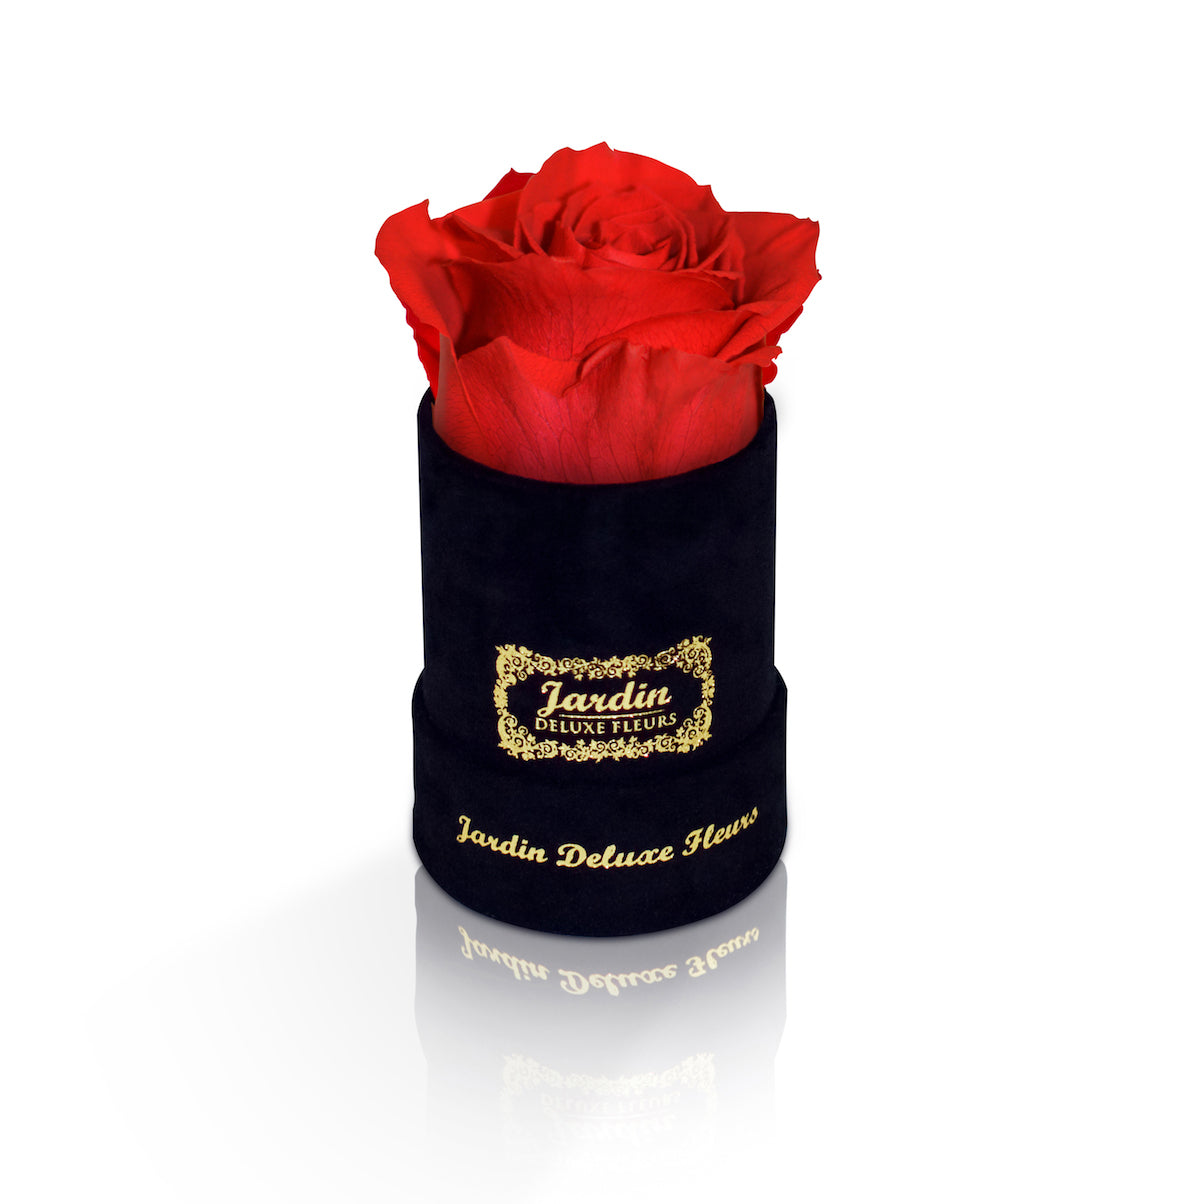 Jardin Deluxe Fleurs - Parisian Inspired Real Roses that last a ...